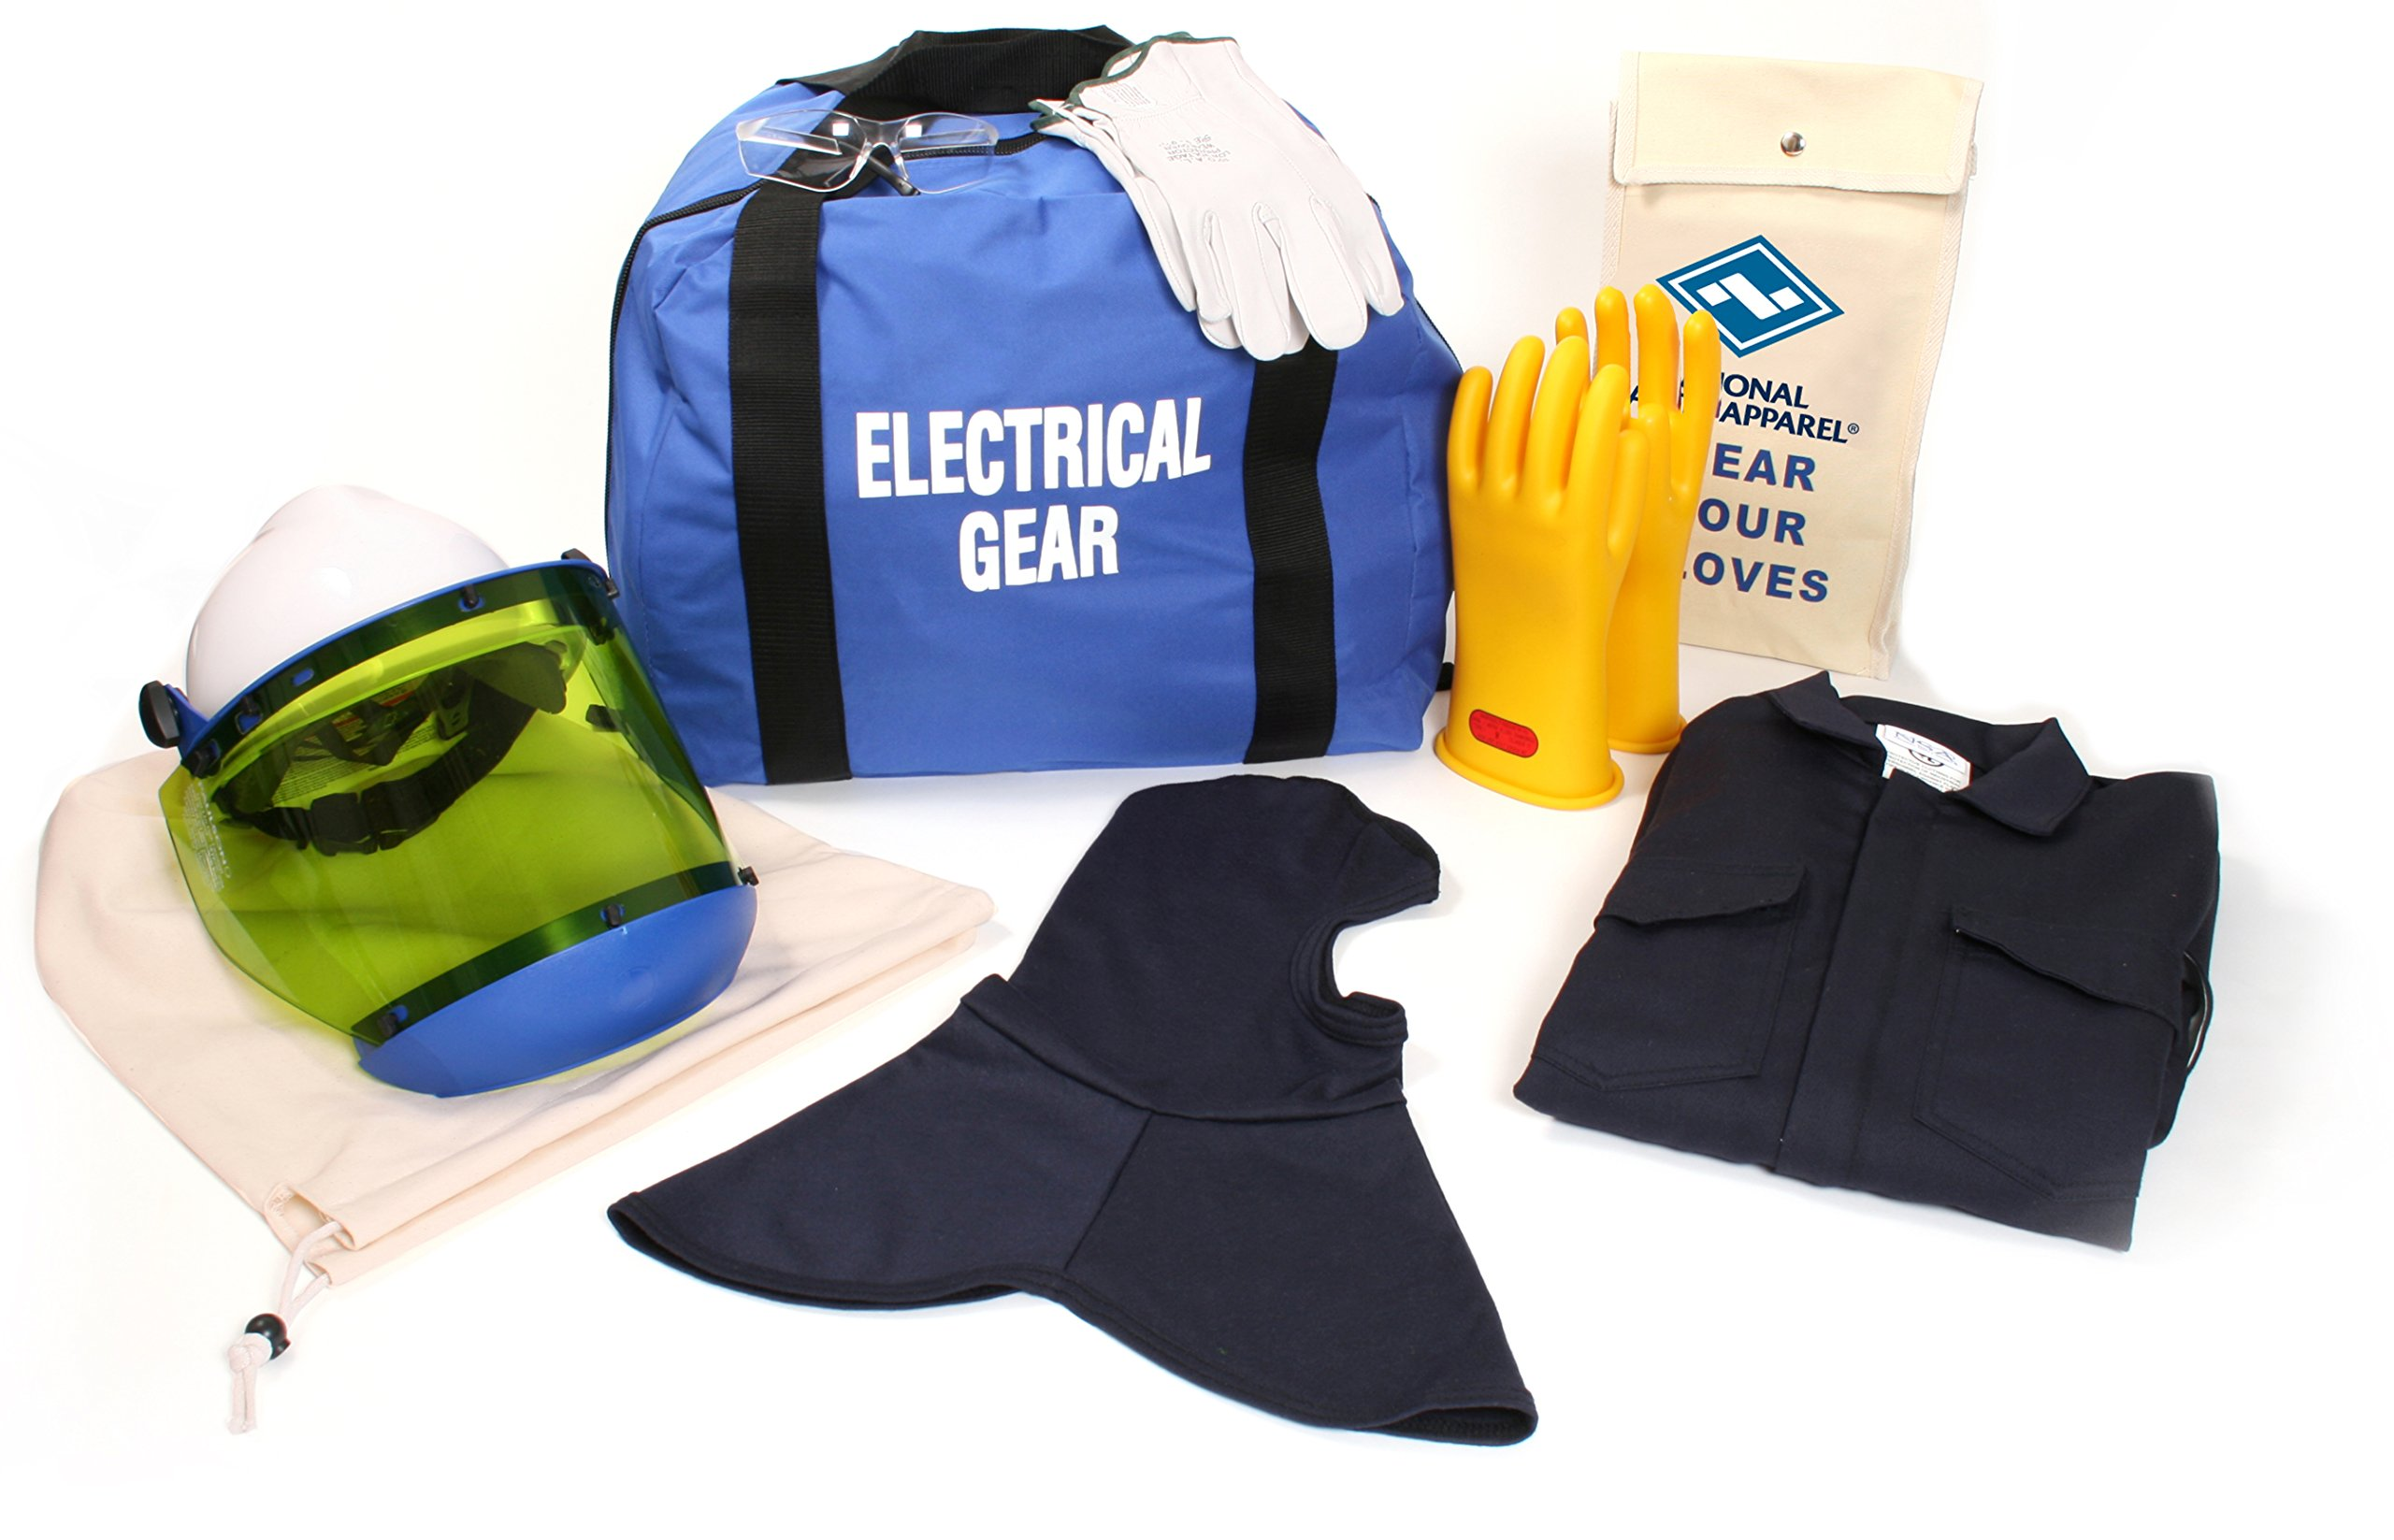 National Safety Apparel KIT2CV08BXL10 ArcGuard UltraSoft Arc Flash Kit with Coverall and Balaclava, 8 Calorie, X-Large, Size 10, Navy